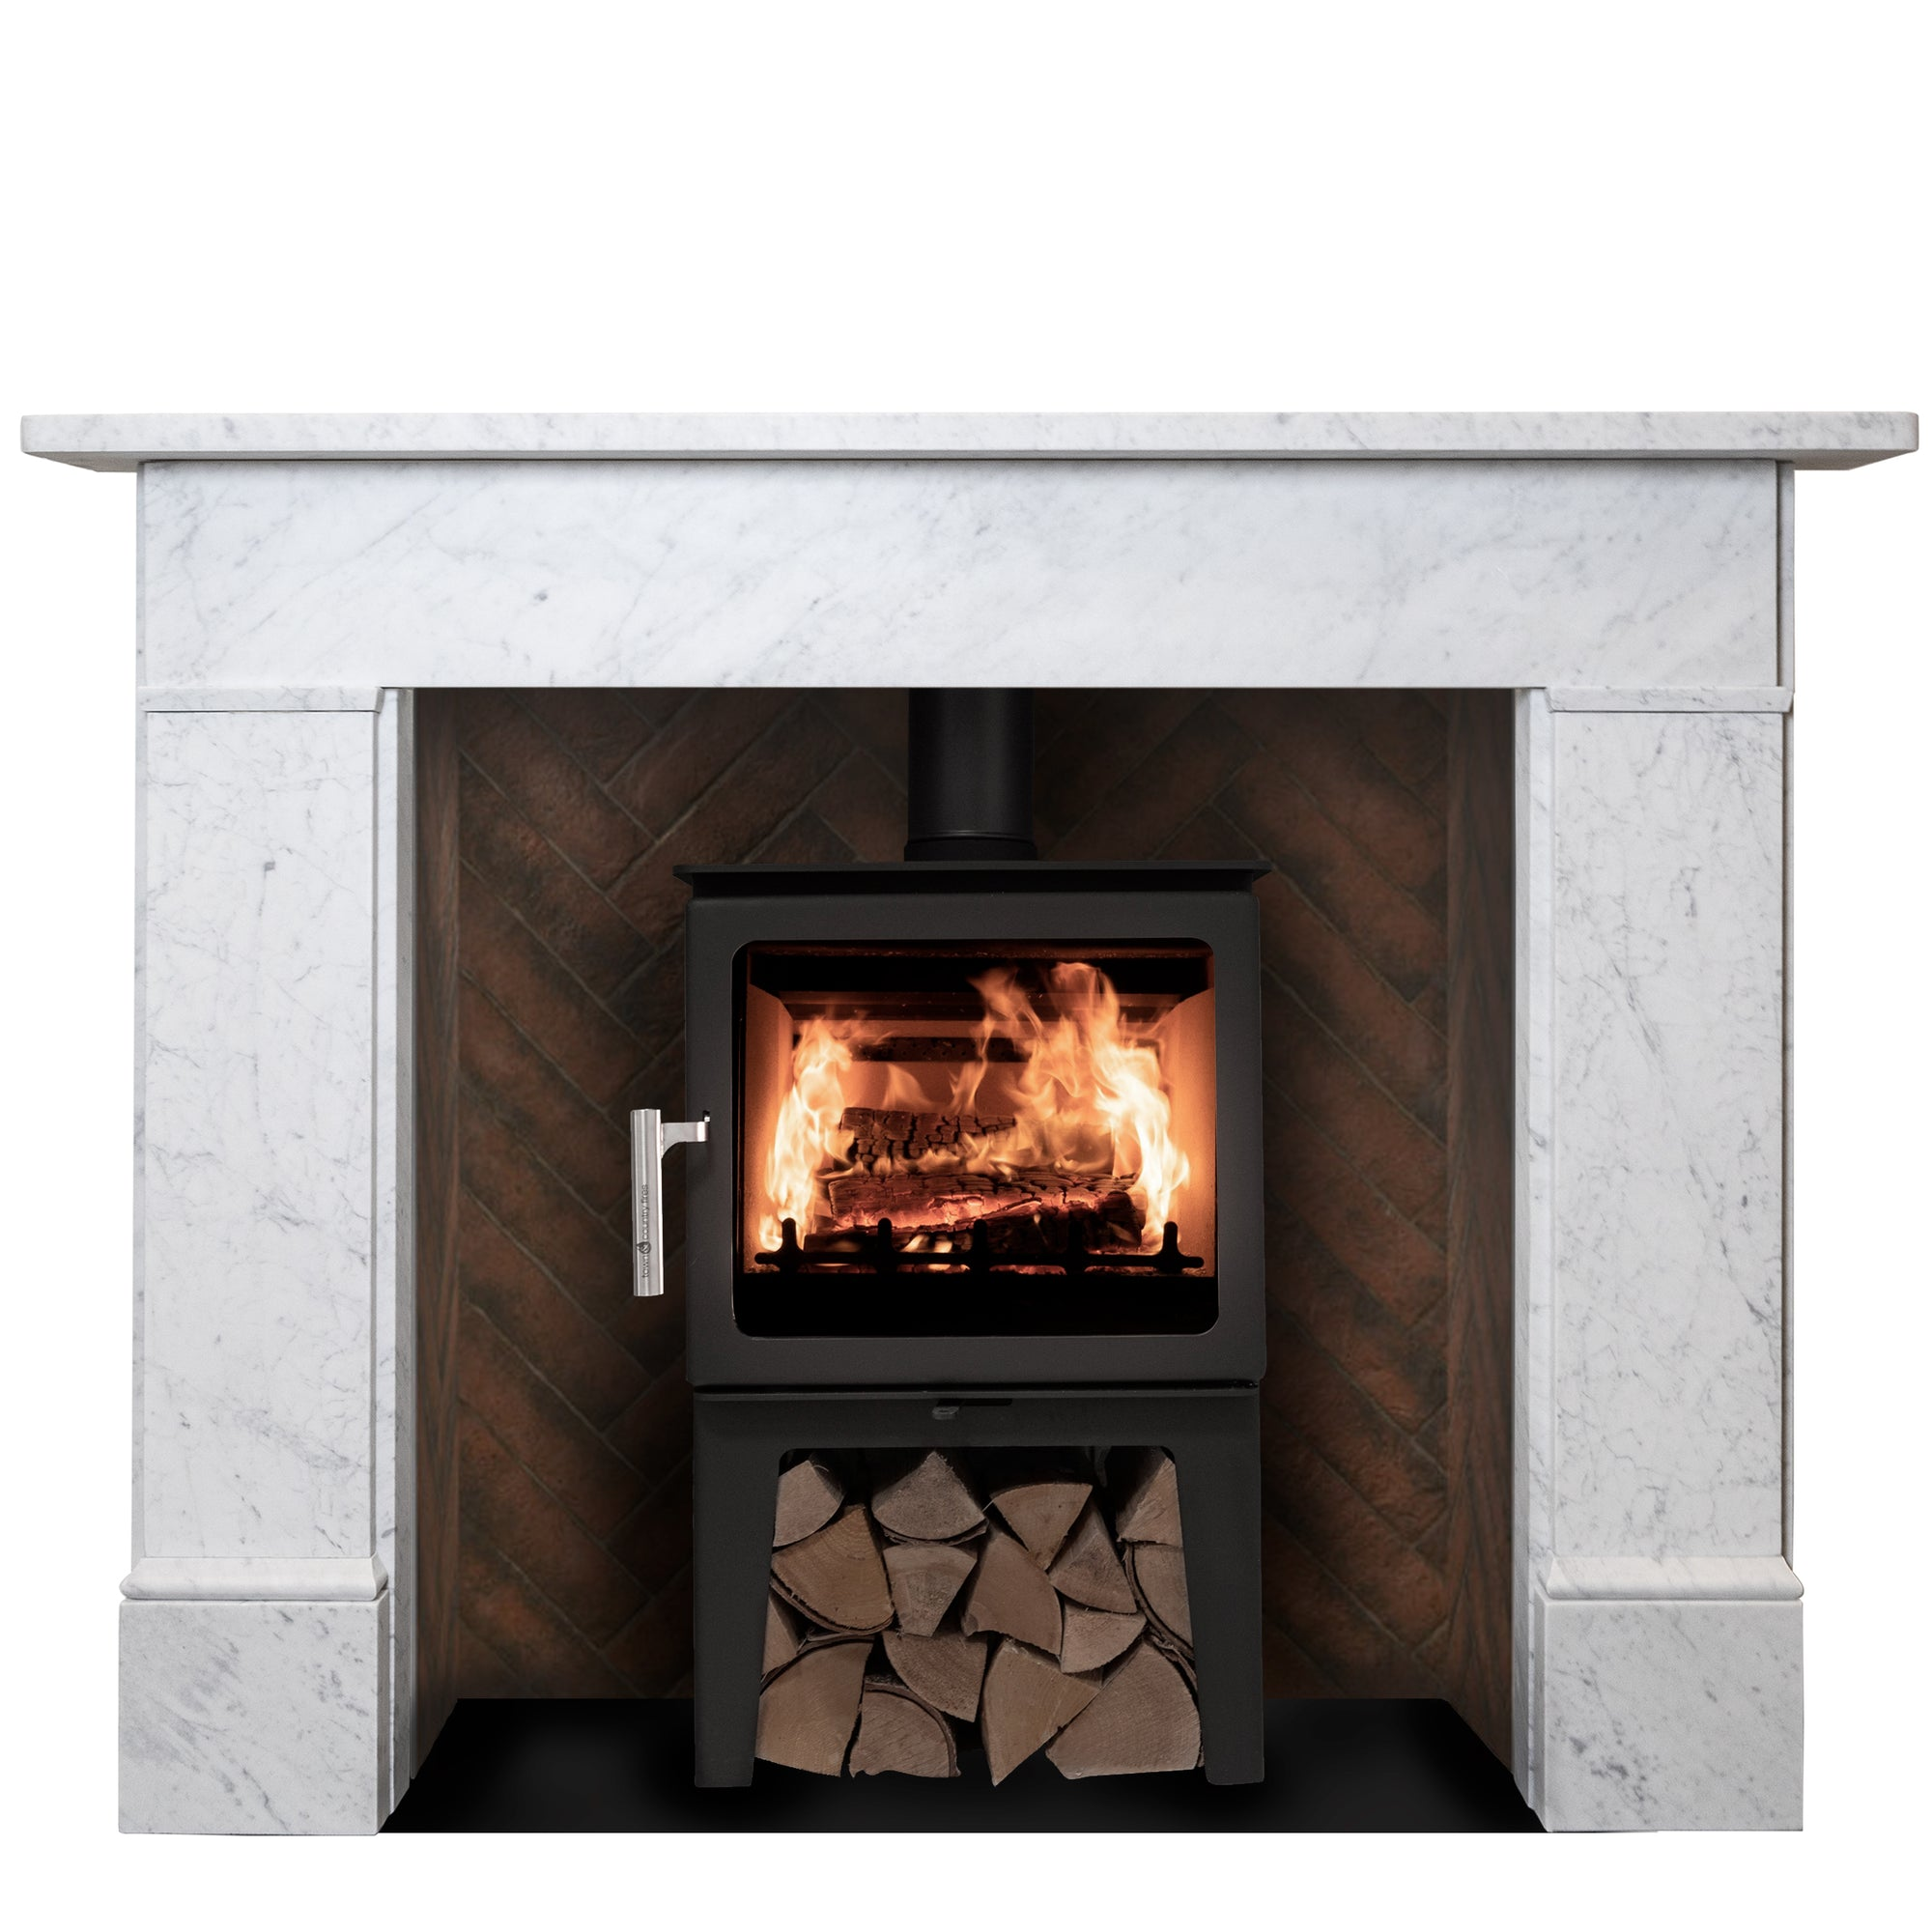 Early Victorian, Late Georgian Style Carrara Marble Fire Surround | The Architectural Forum